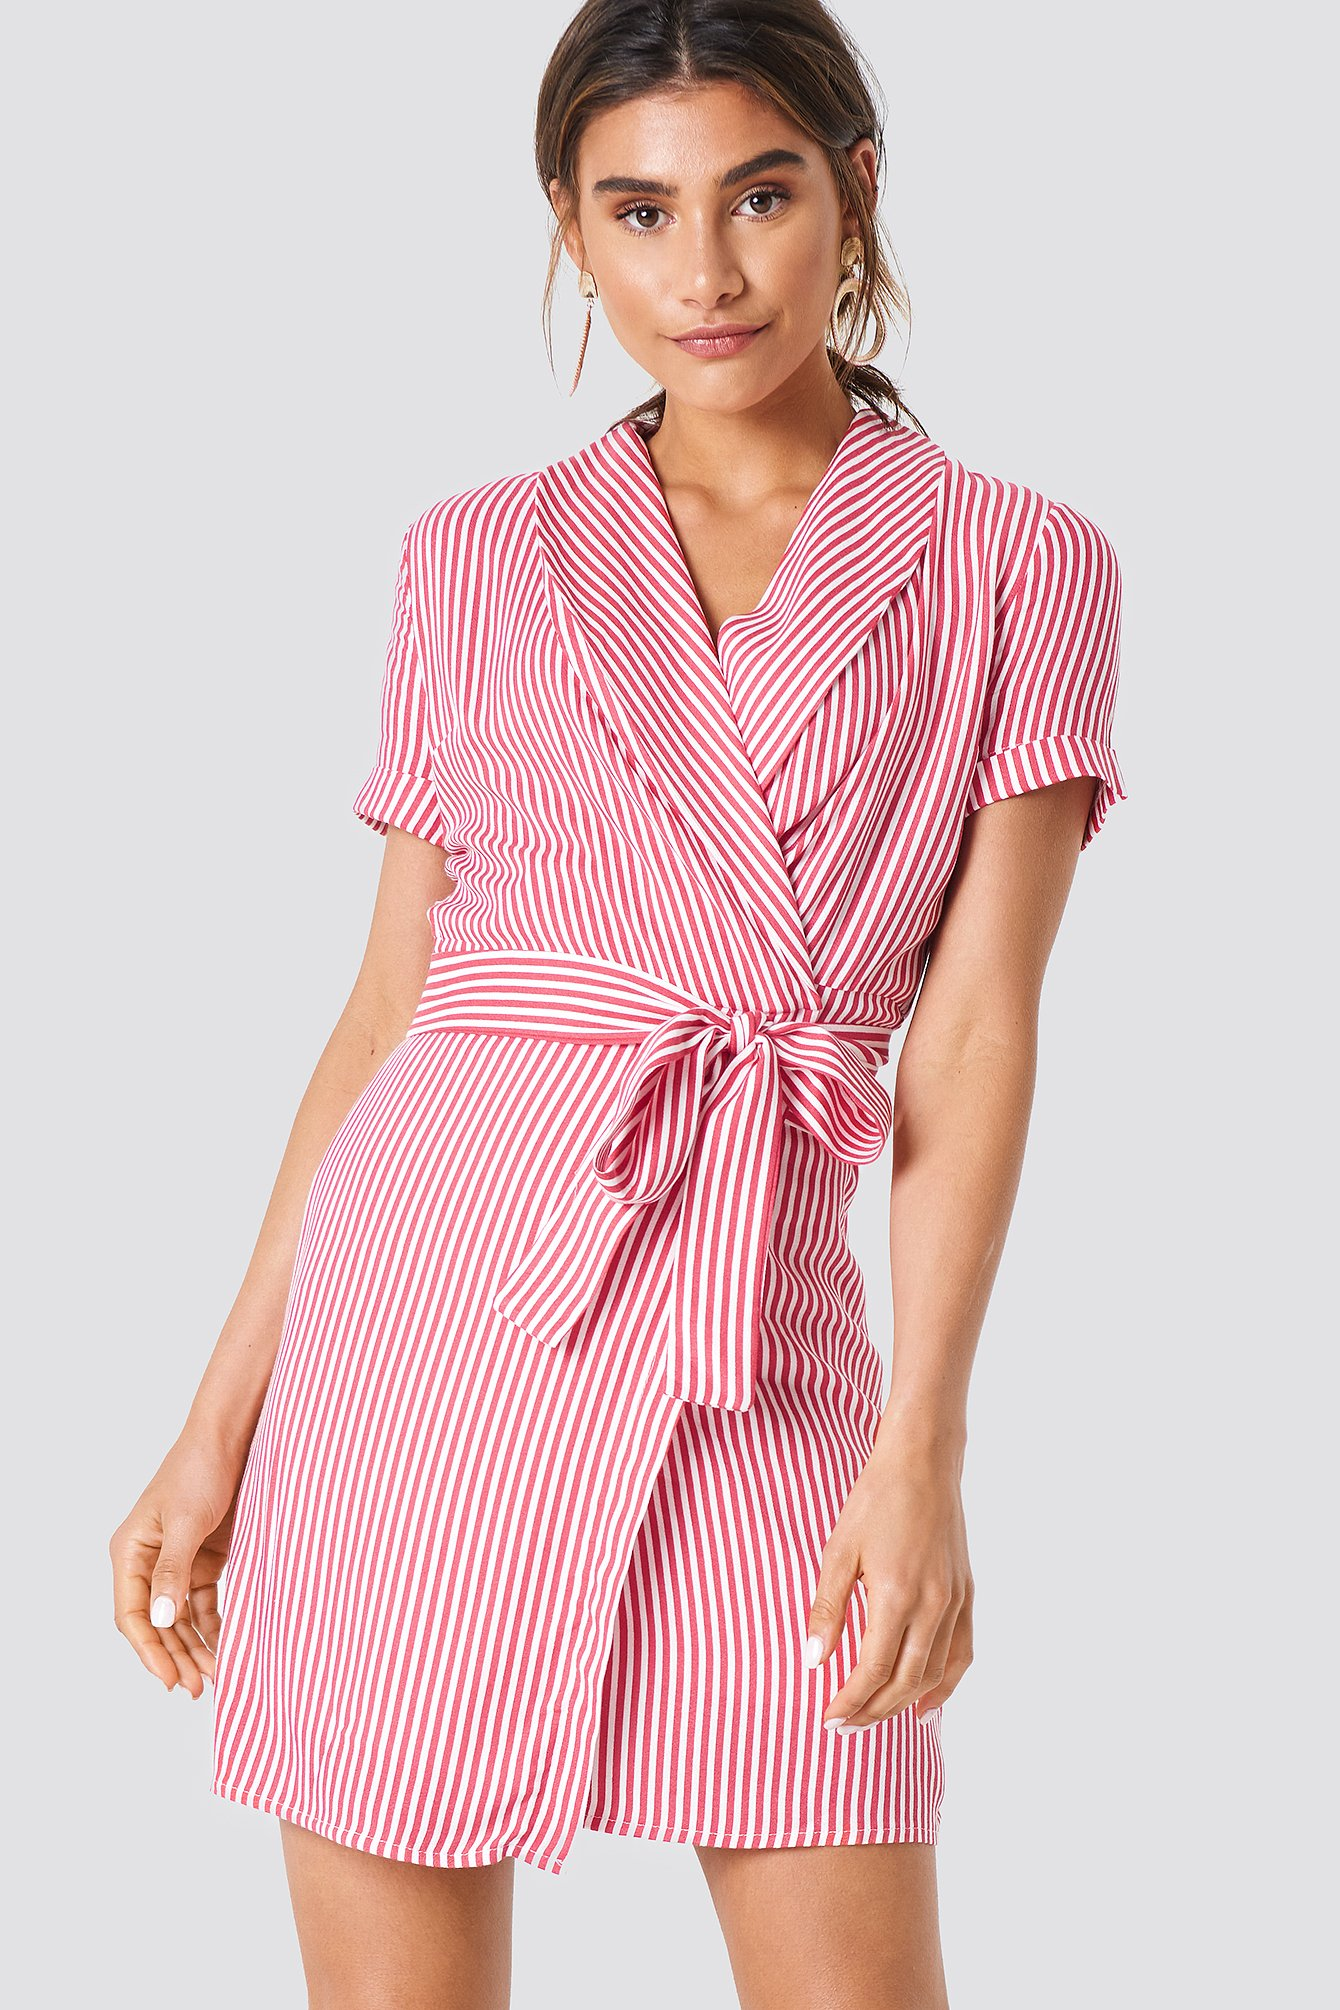 TRENDYOL DOUBLE LAYERED STRIPED DRESS - RED